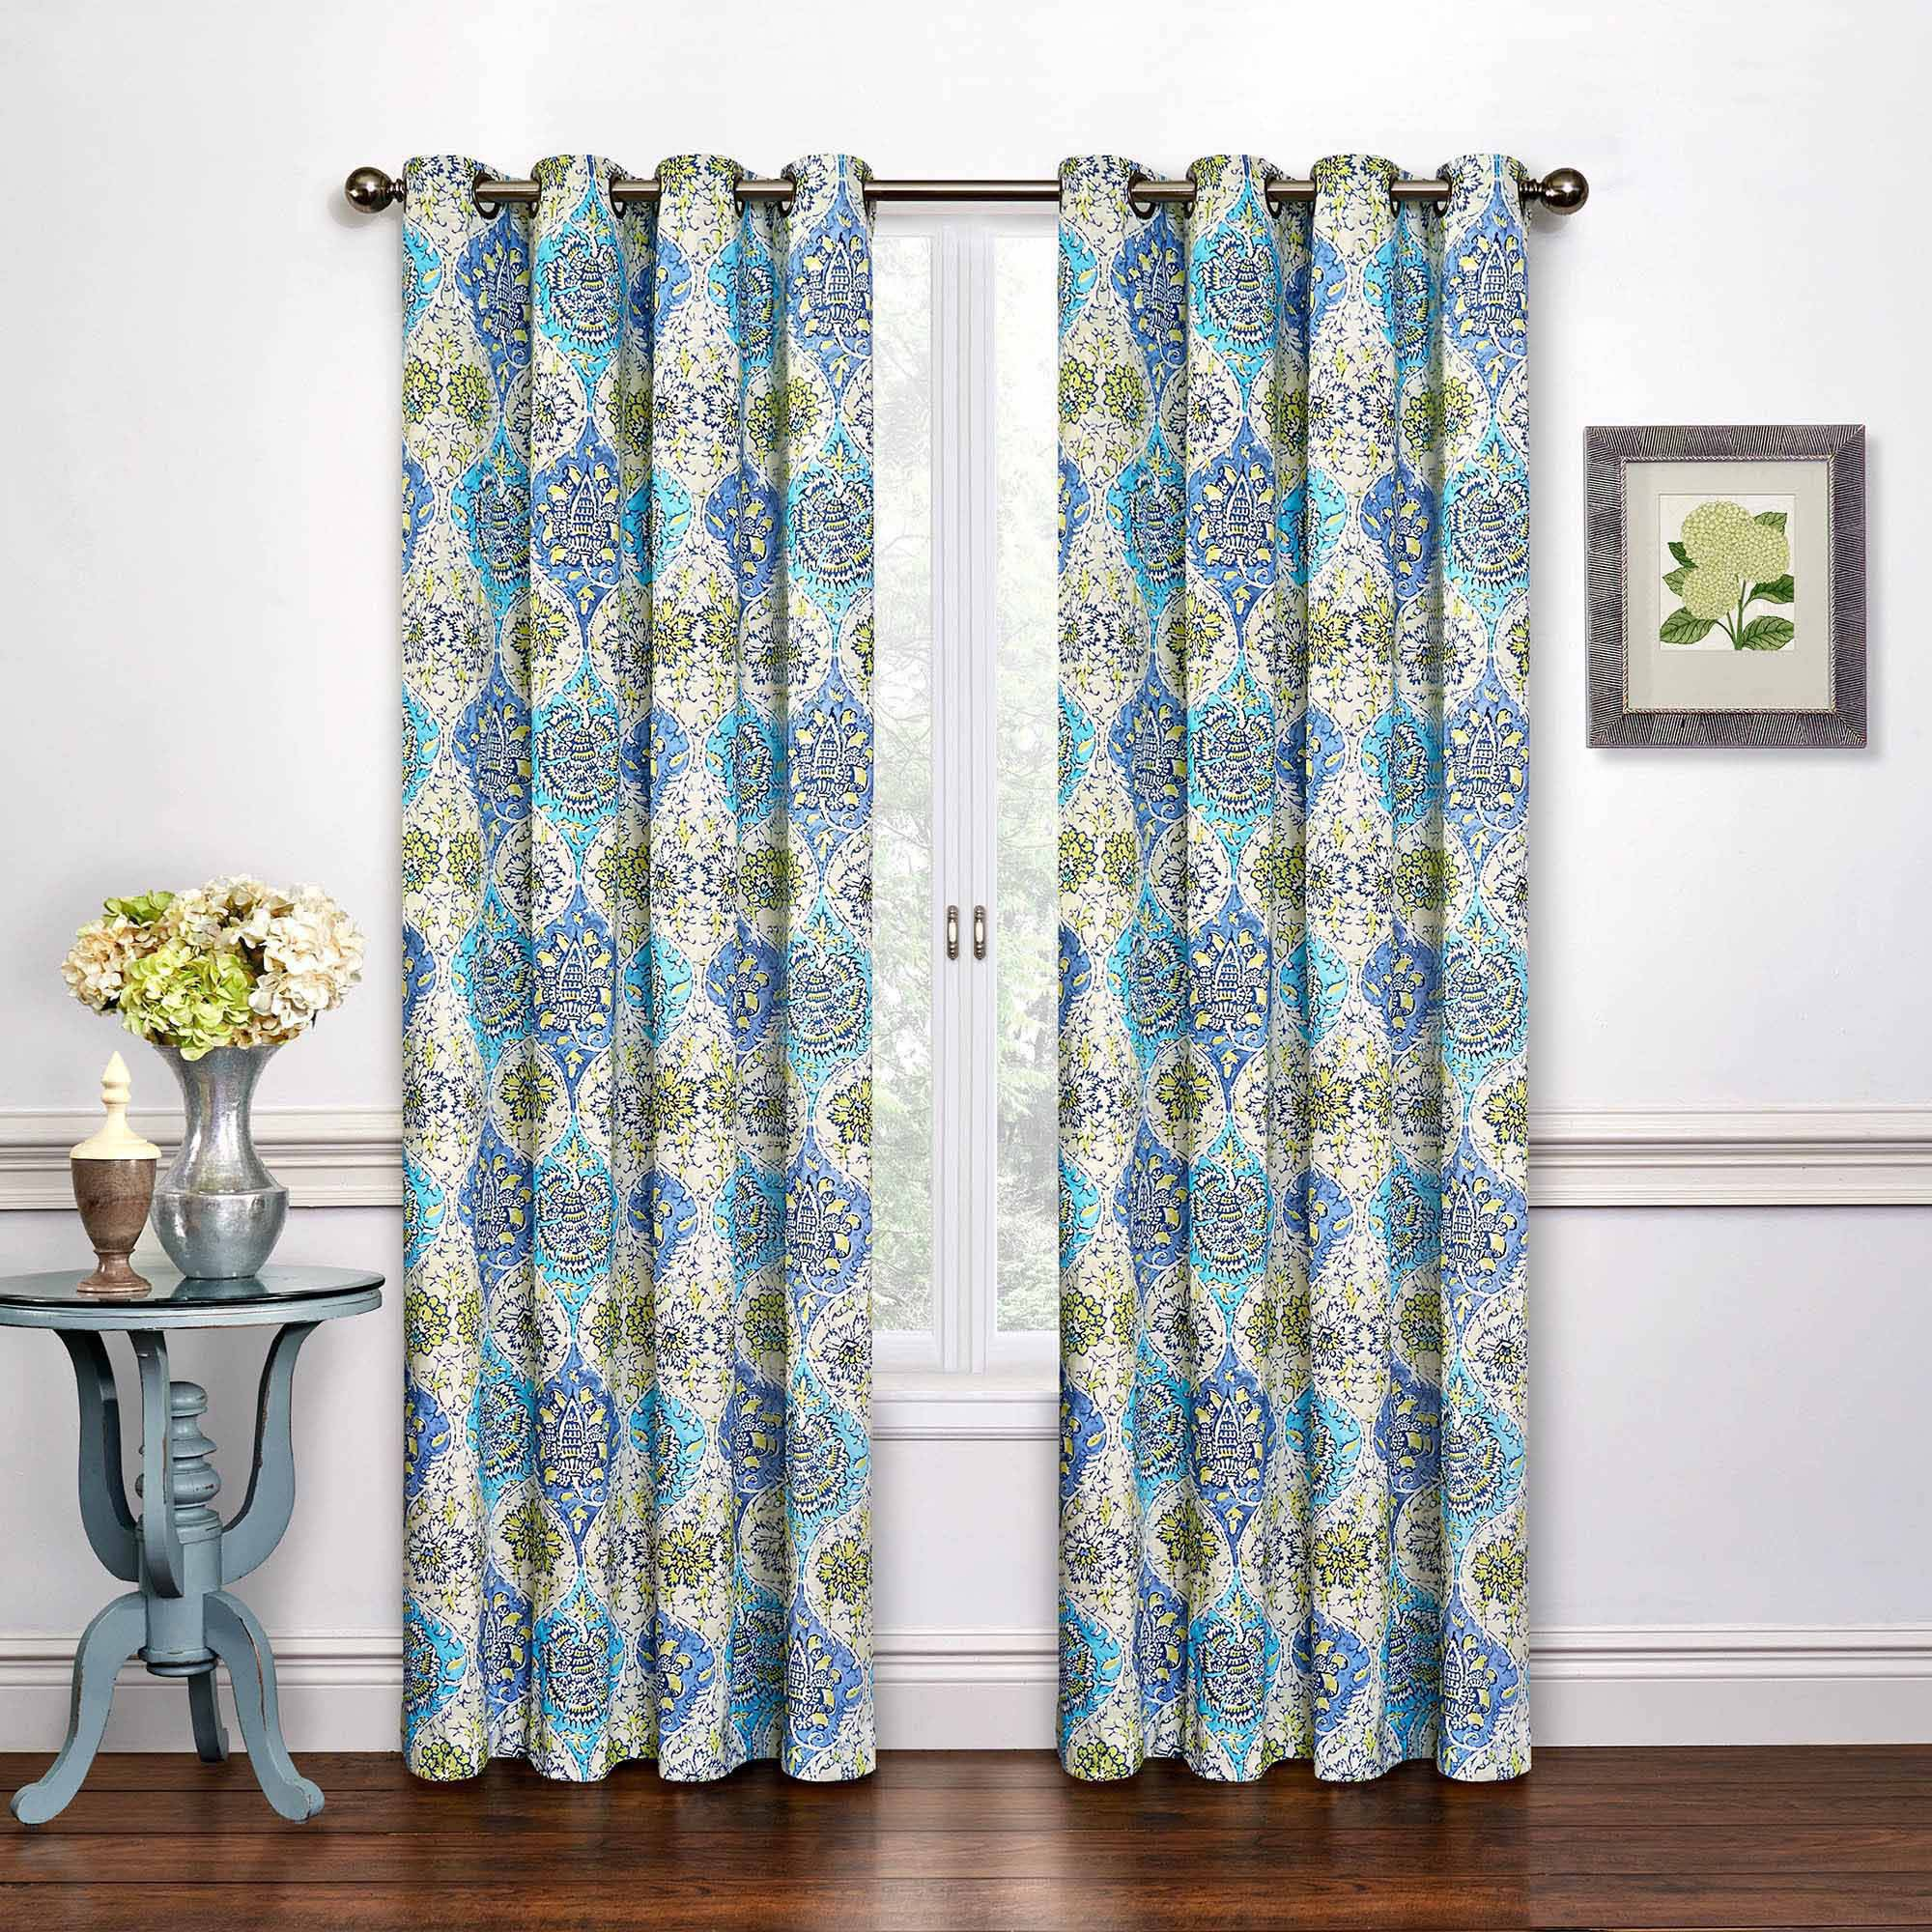 Kings Turban Curtain Panels